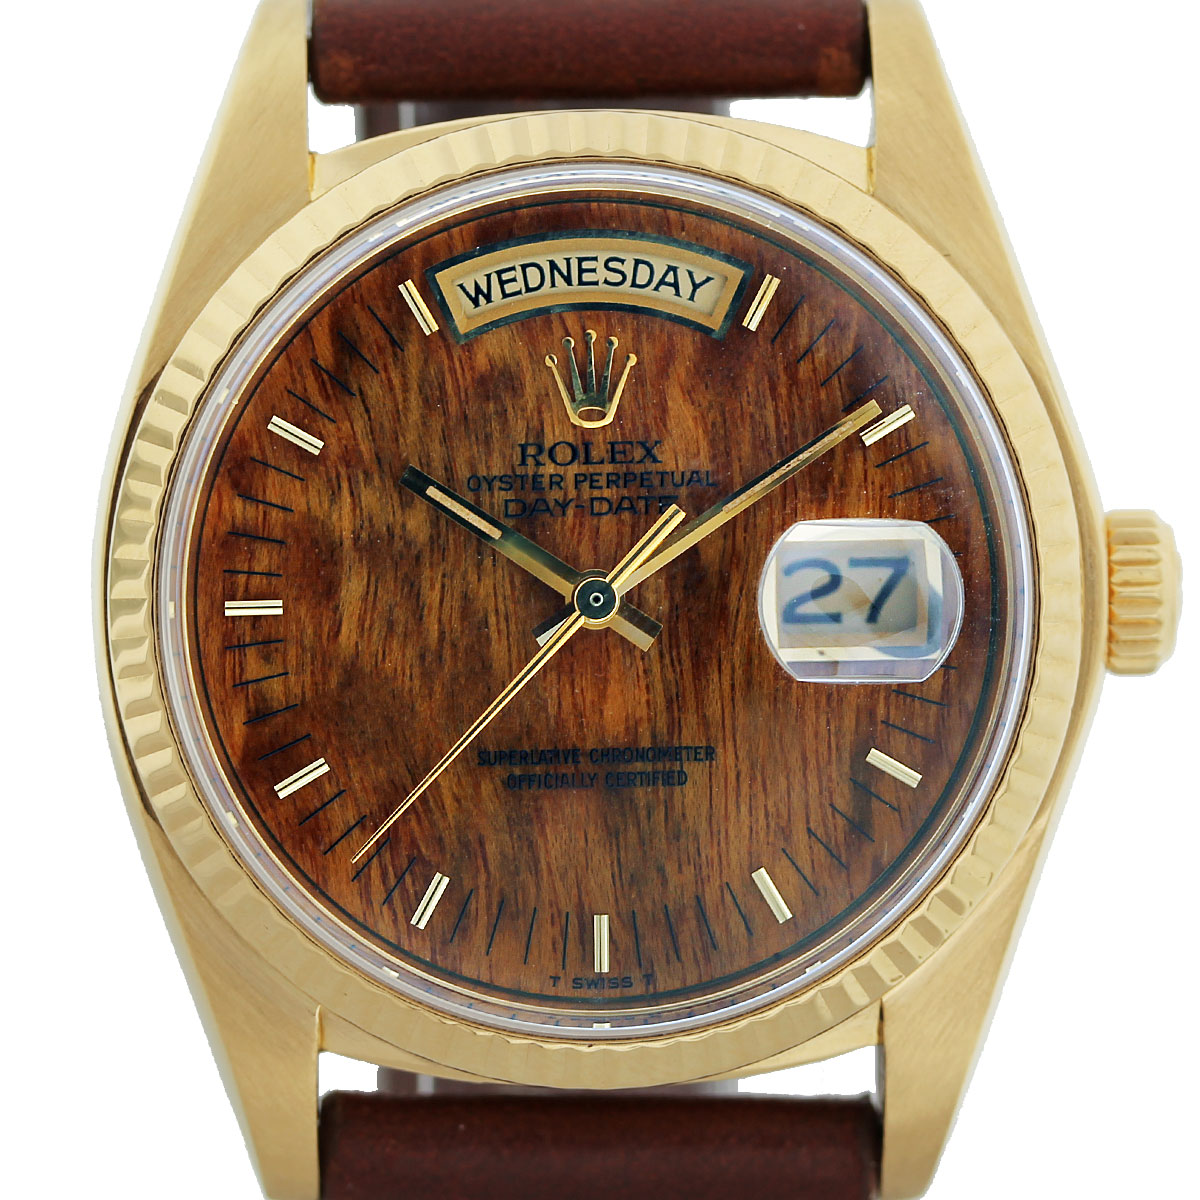 Rolex 18038 Yellow Gold Burled Wood Dial Watch